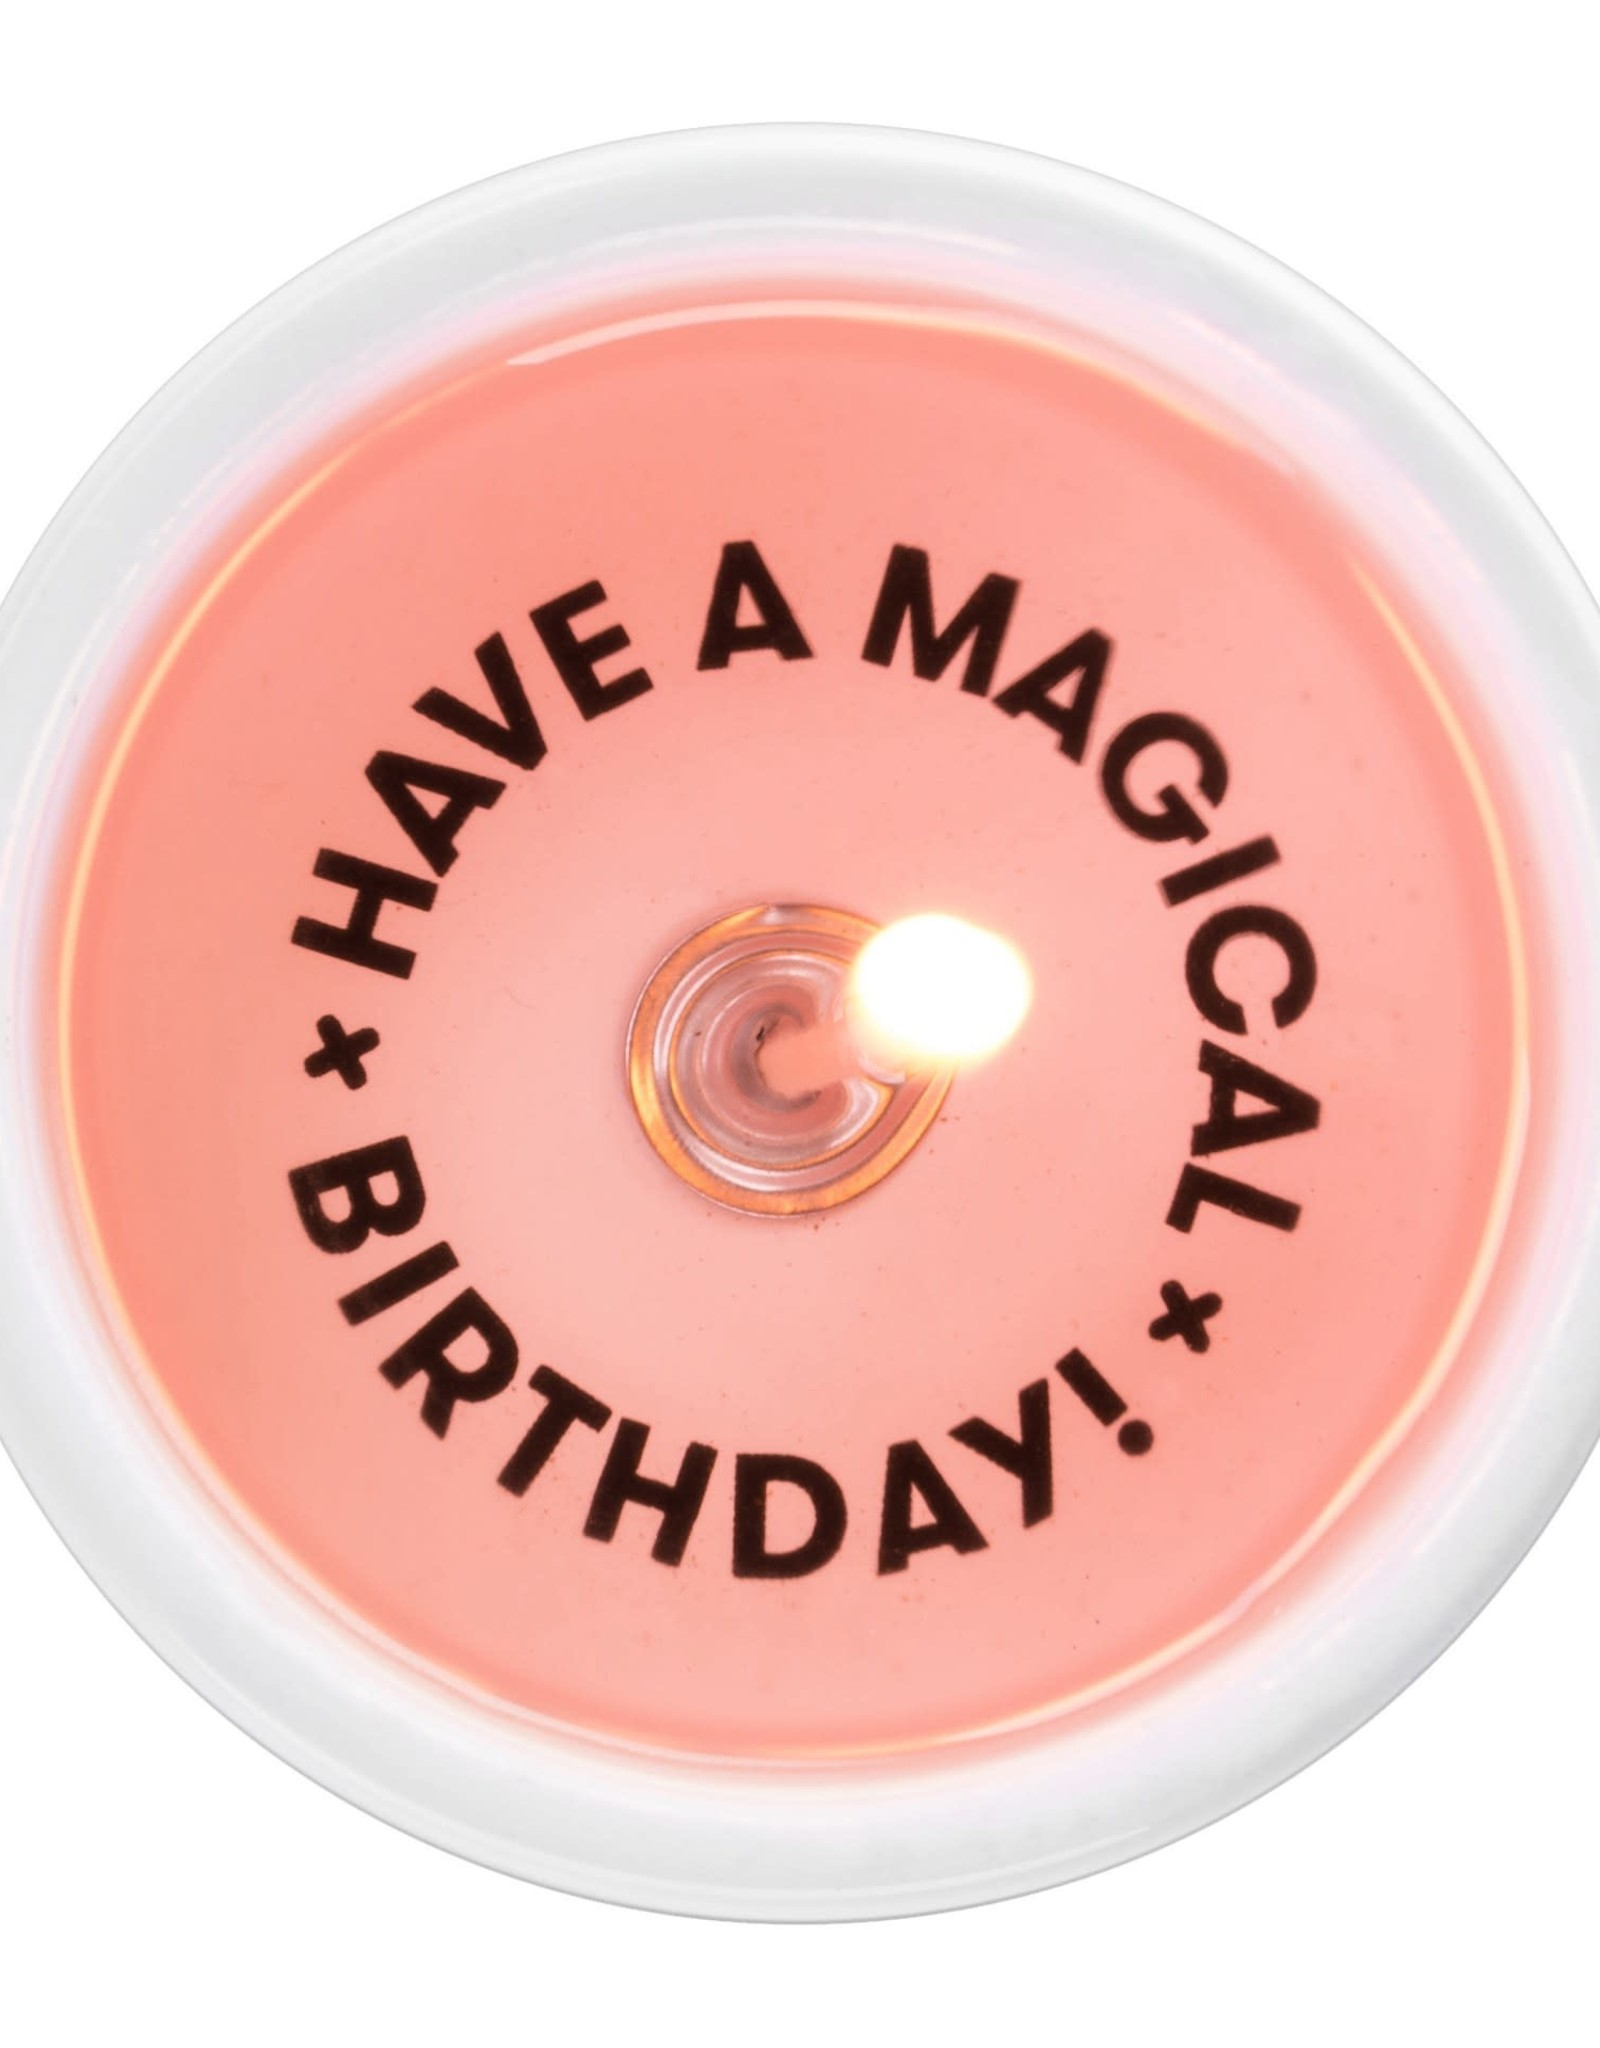 The tate group BOUGIE : HAVE A MAGICAL BIRTHDAY